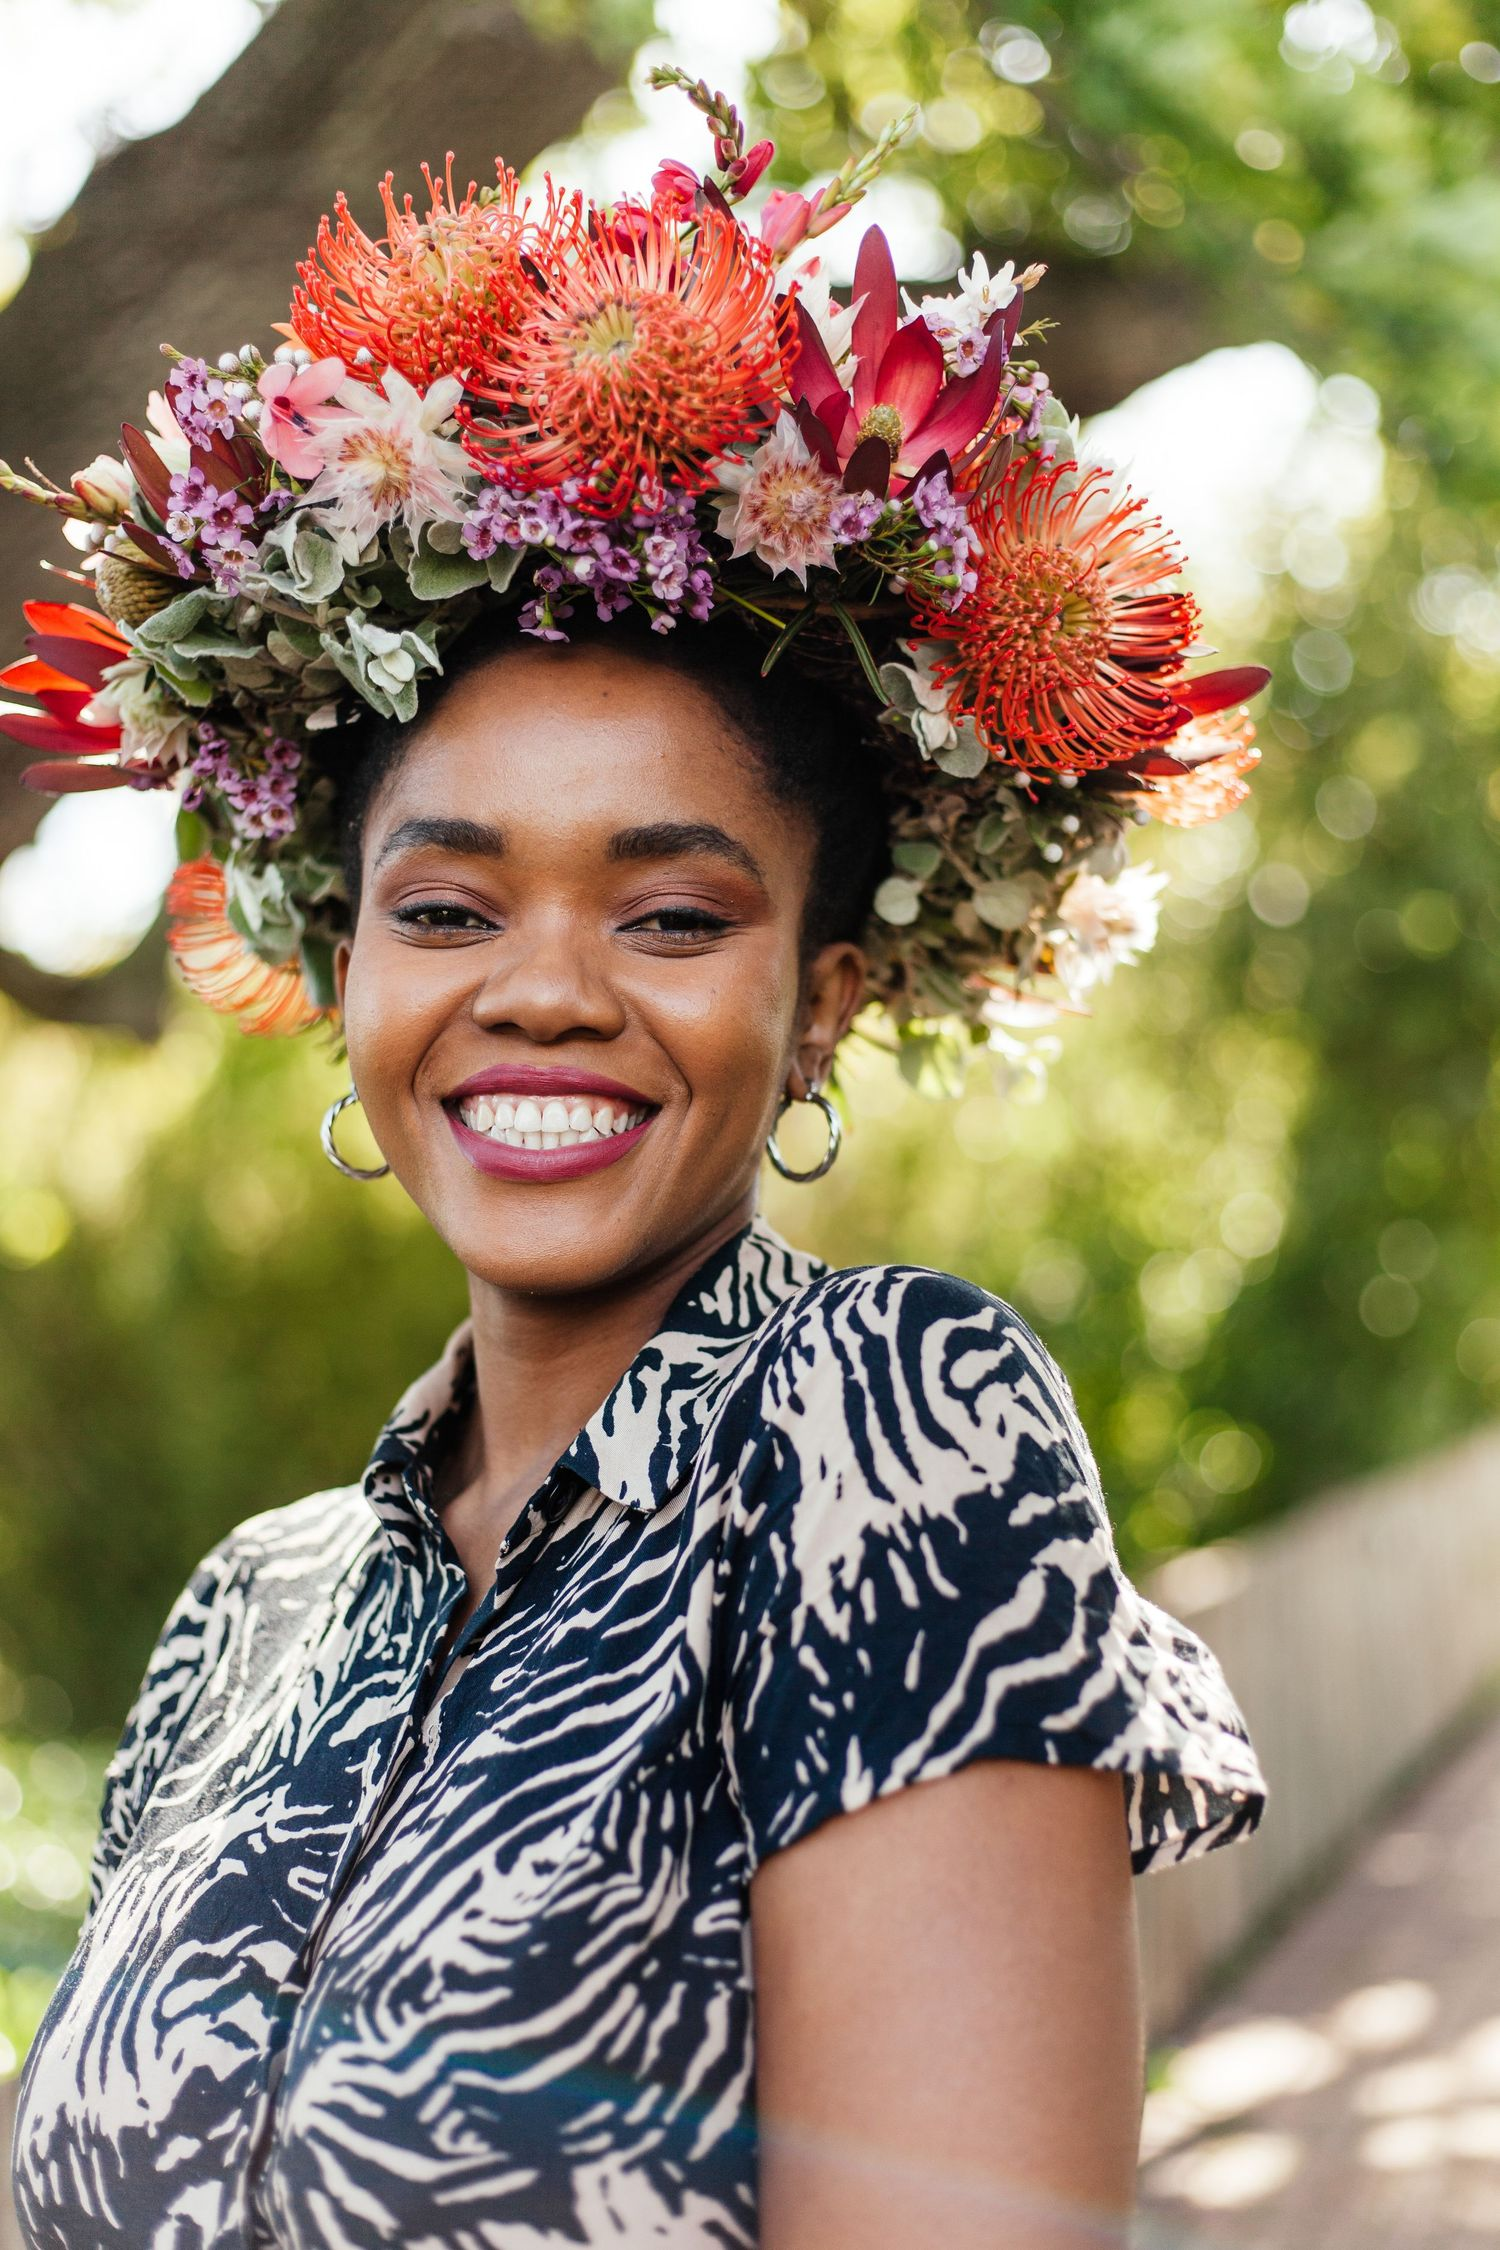 Abongwe Garden Day portrait by Cape Town photographer Estee de Villiers